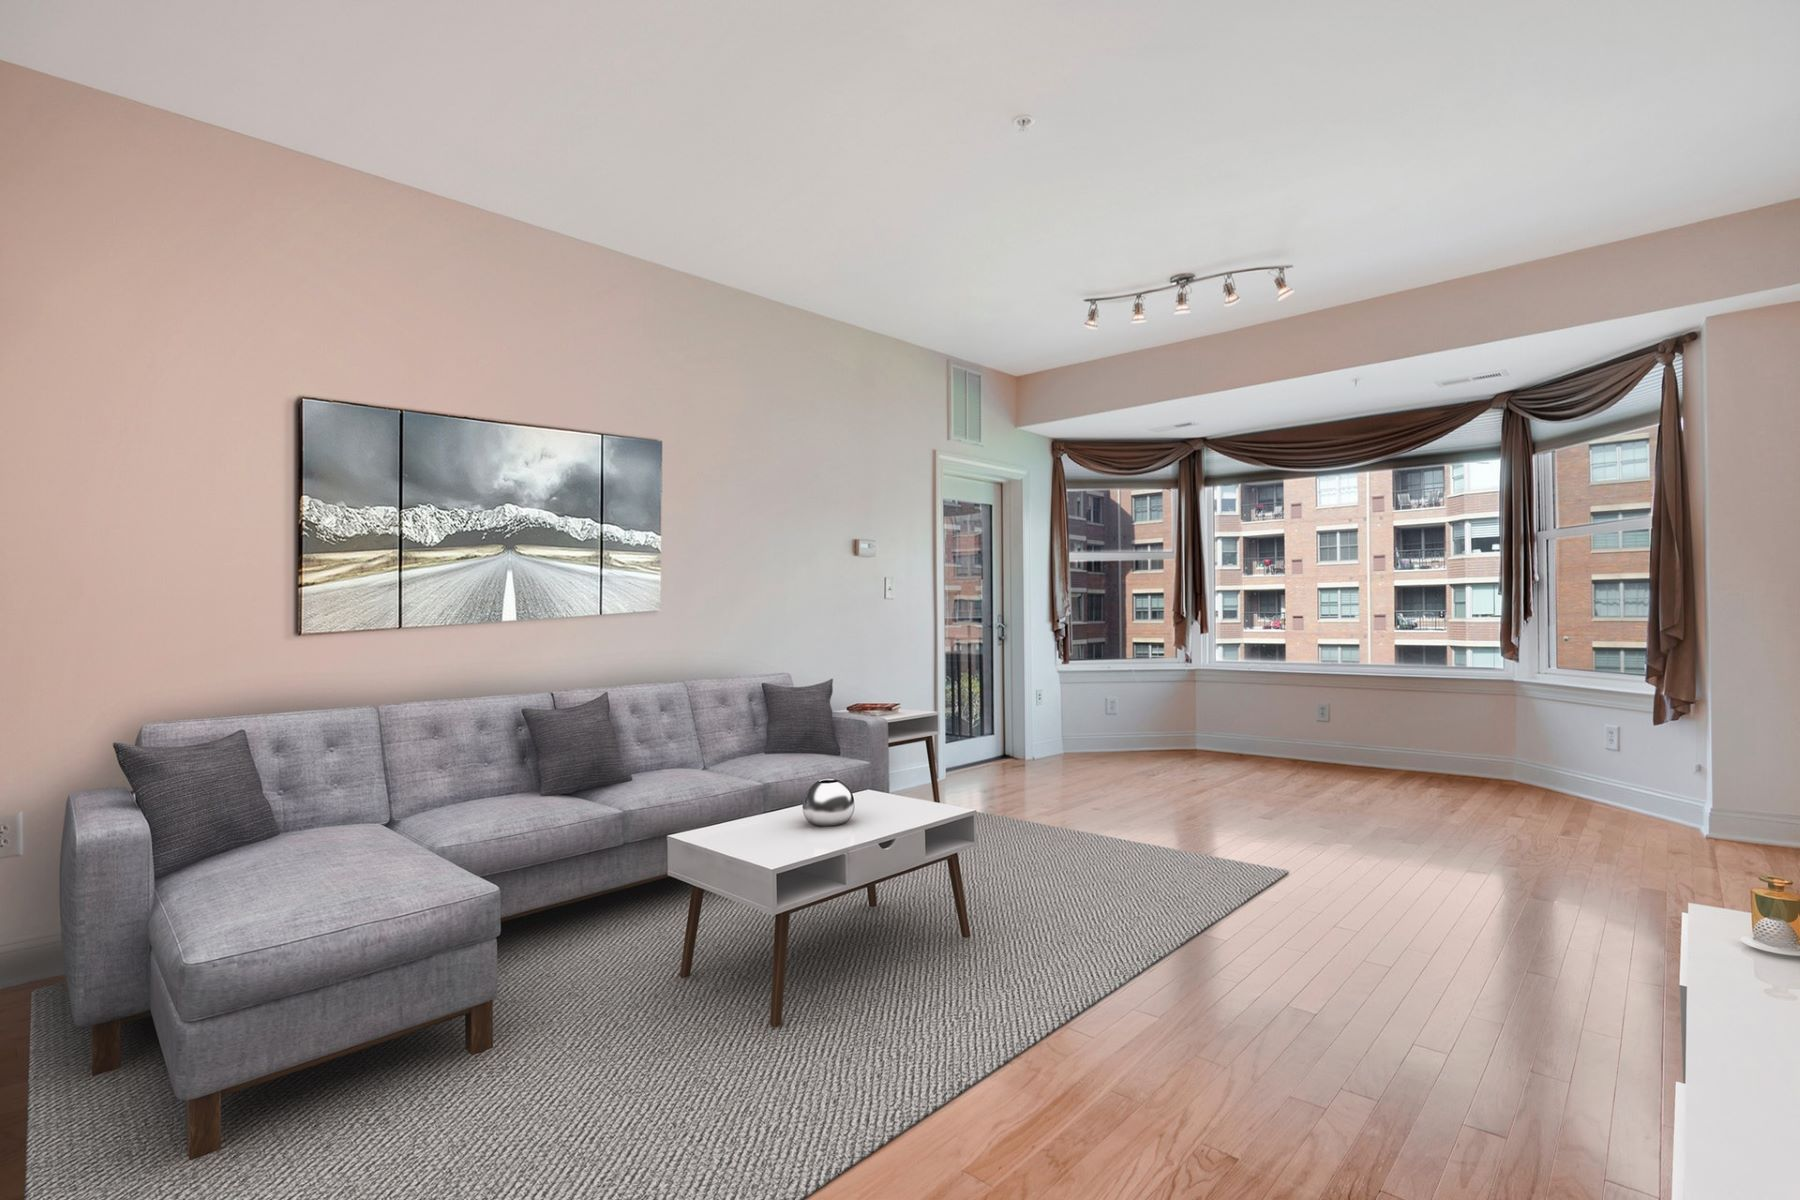 Condominiums for Sale at Welcome home to this North East facing 2 bed 2 bath condo 20 Avenue at Port Imperial #309, West New York, New Jersey 07093 United States